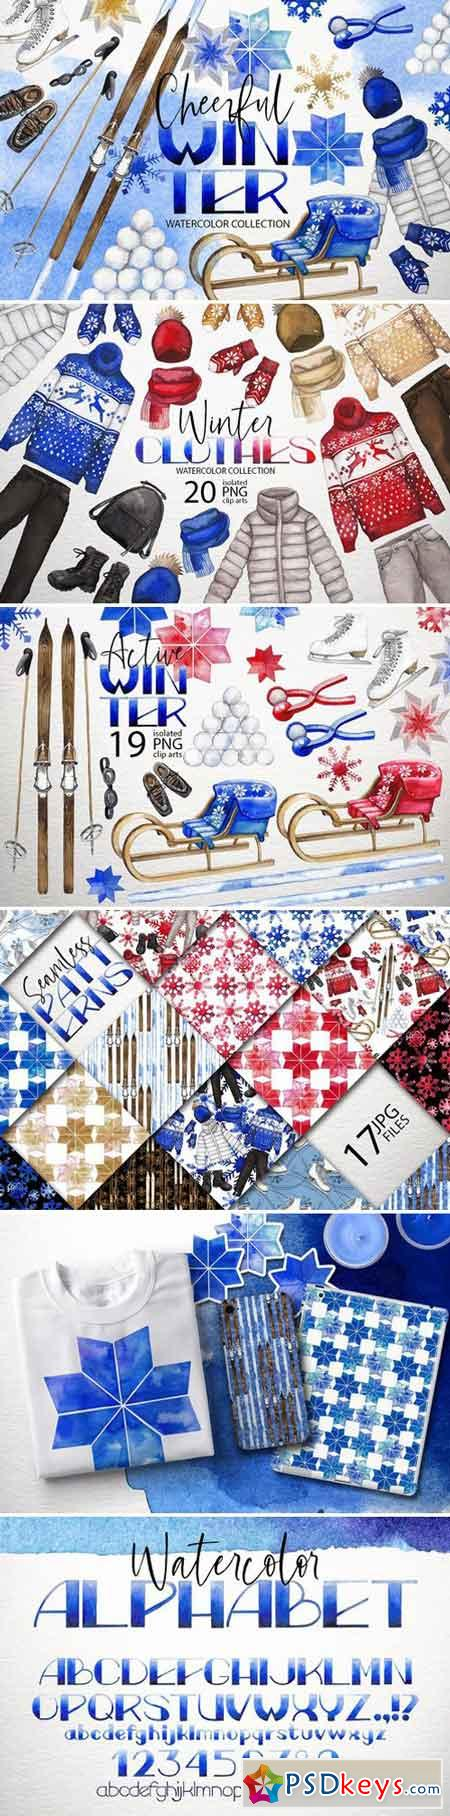 Watercolor winter colletion 2042367